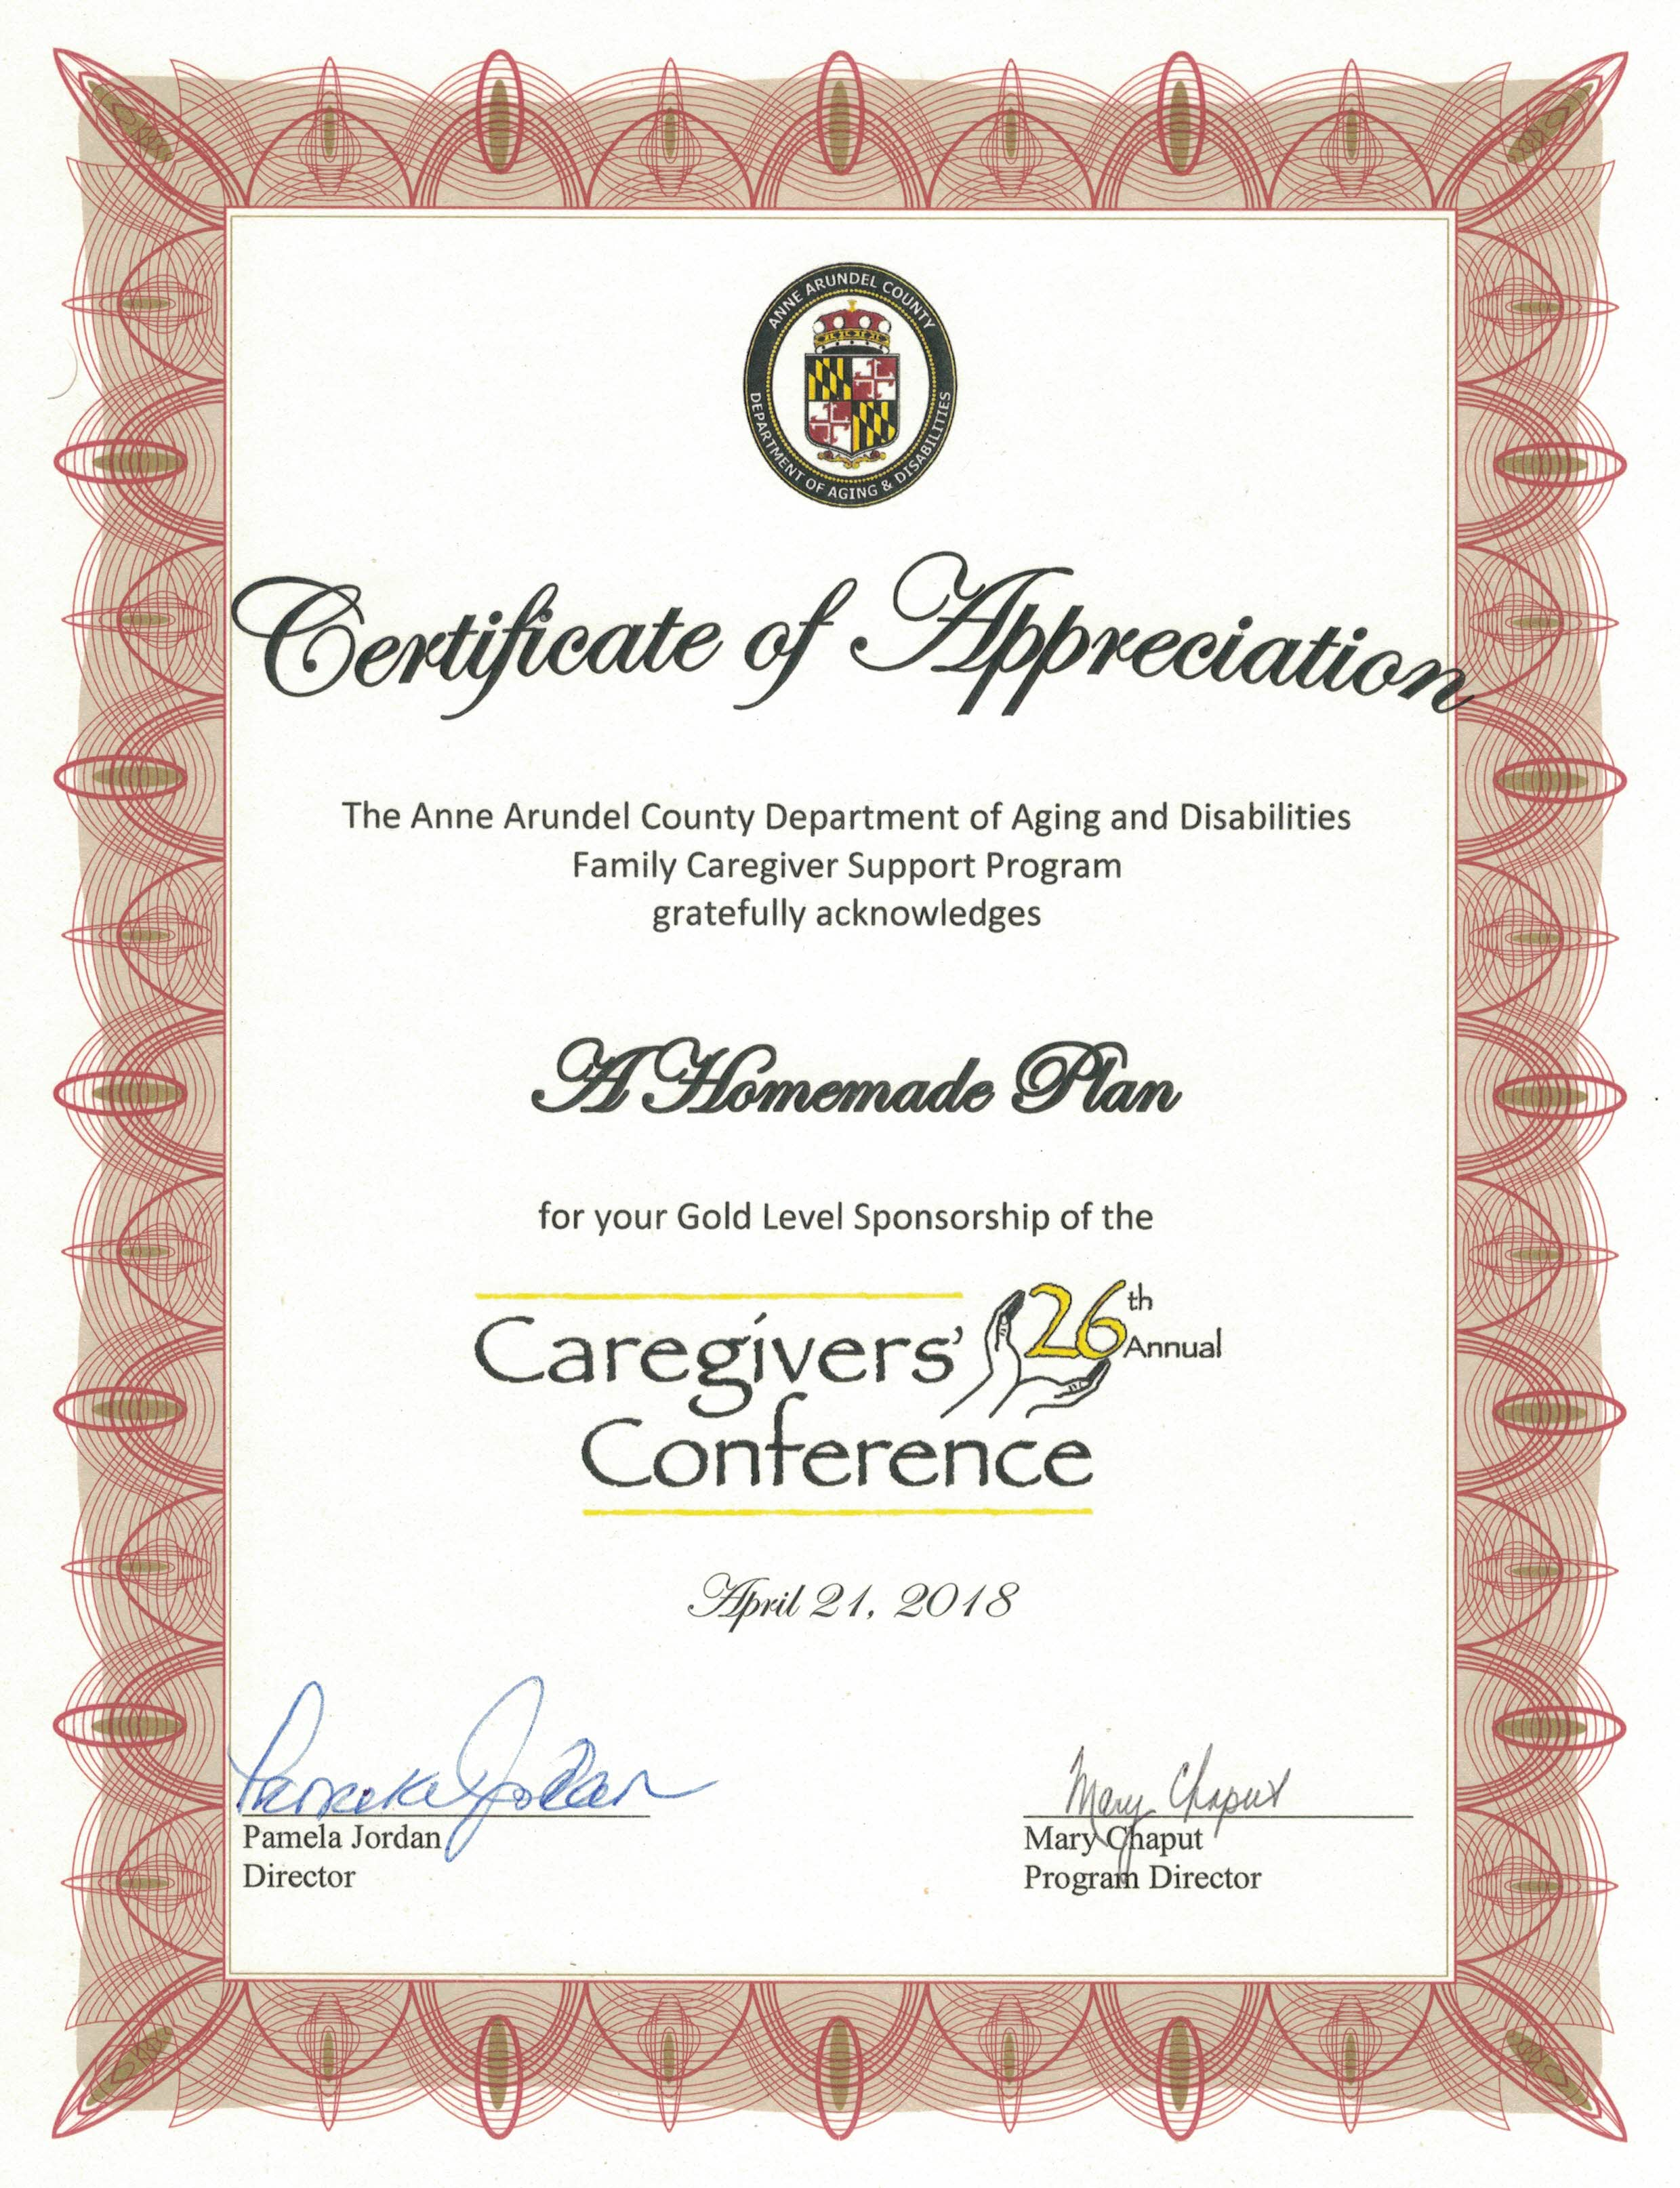 Anne Arundel County Md Certificate Of Appreciation A Homemade Plan